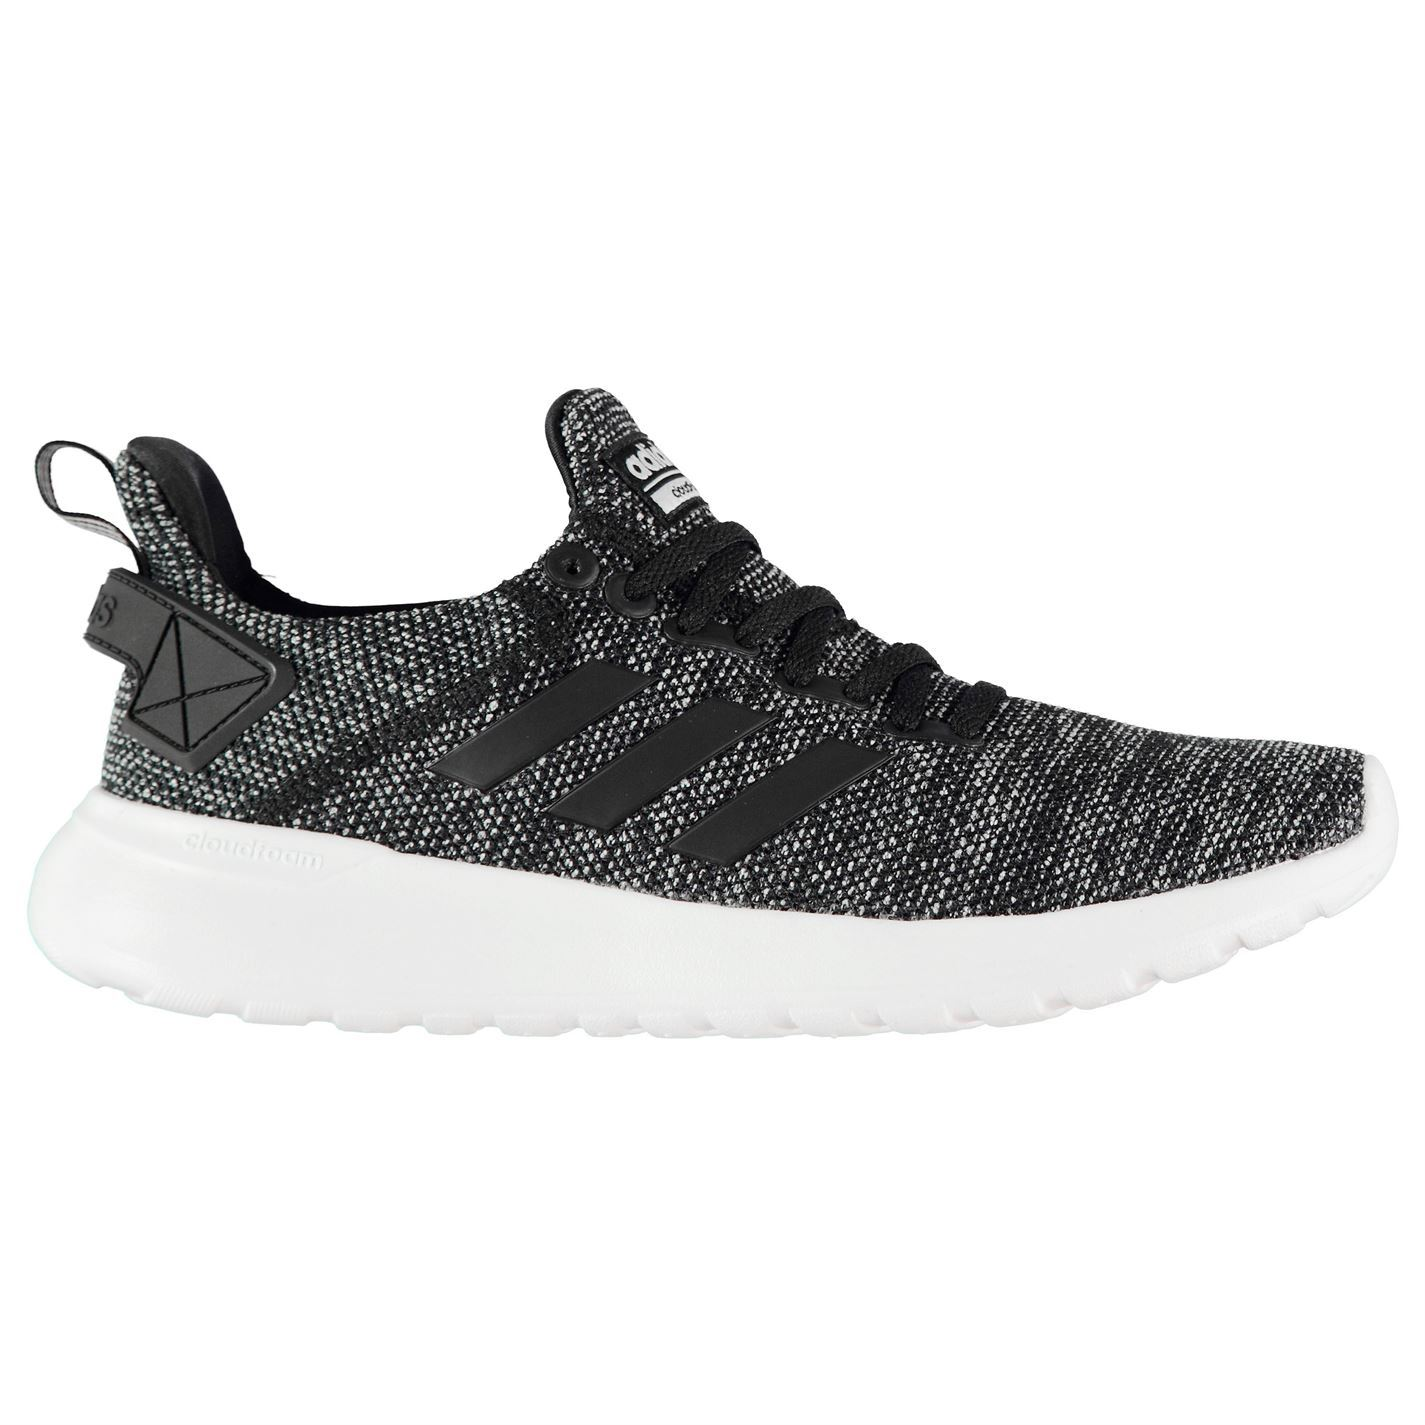 the best attitude 90204 bfd88 adidas Cloudfoam Lite Racer BYD Trainers Mens Black White Sports Shoes  Sneakers